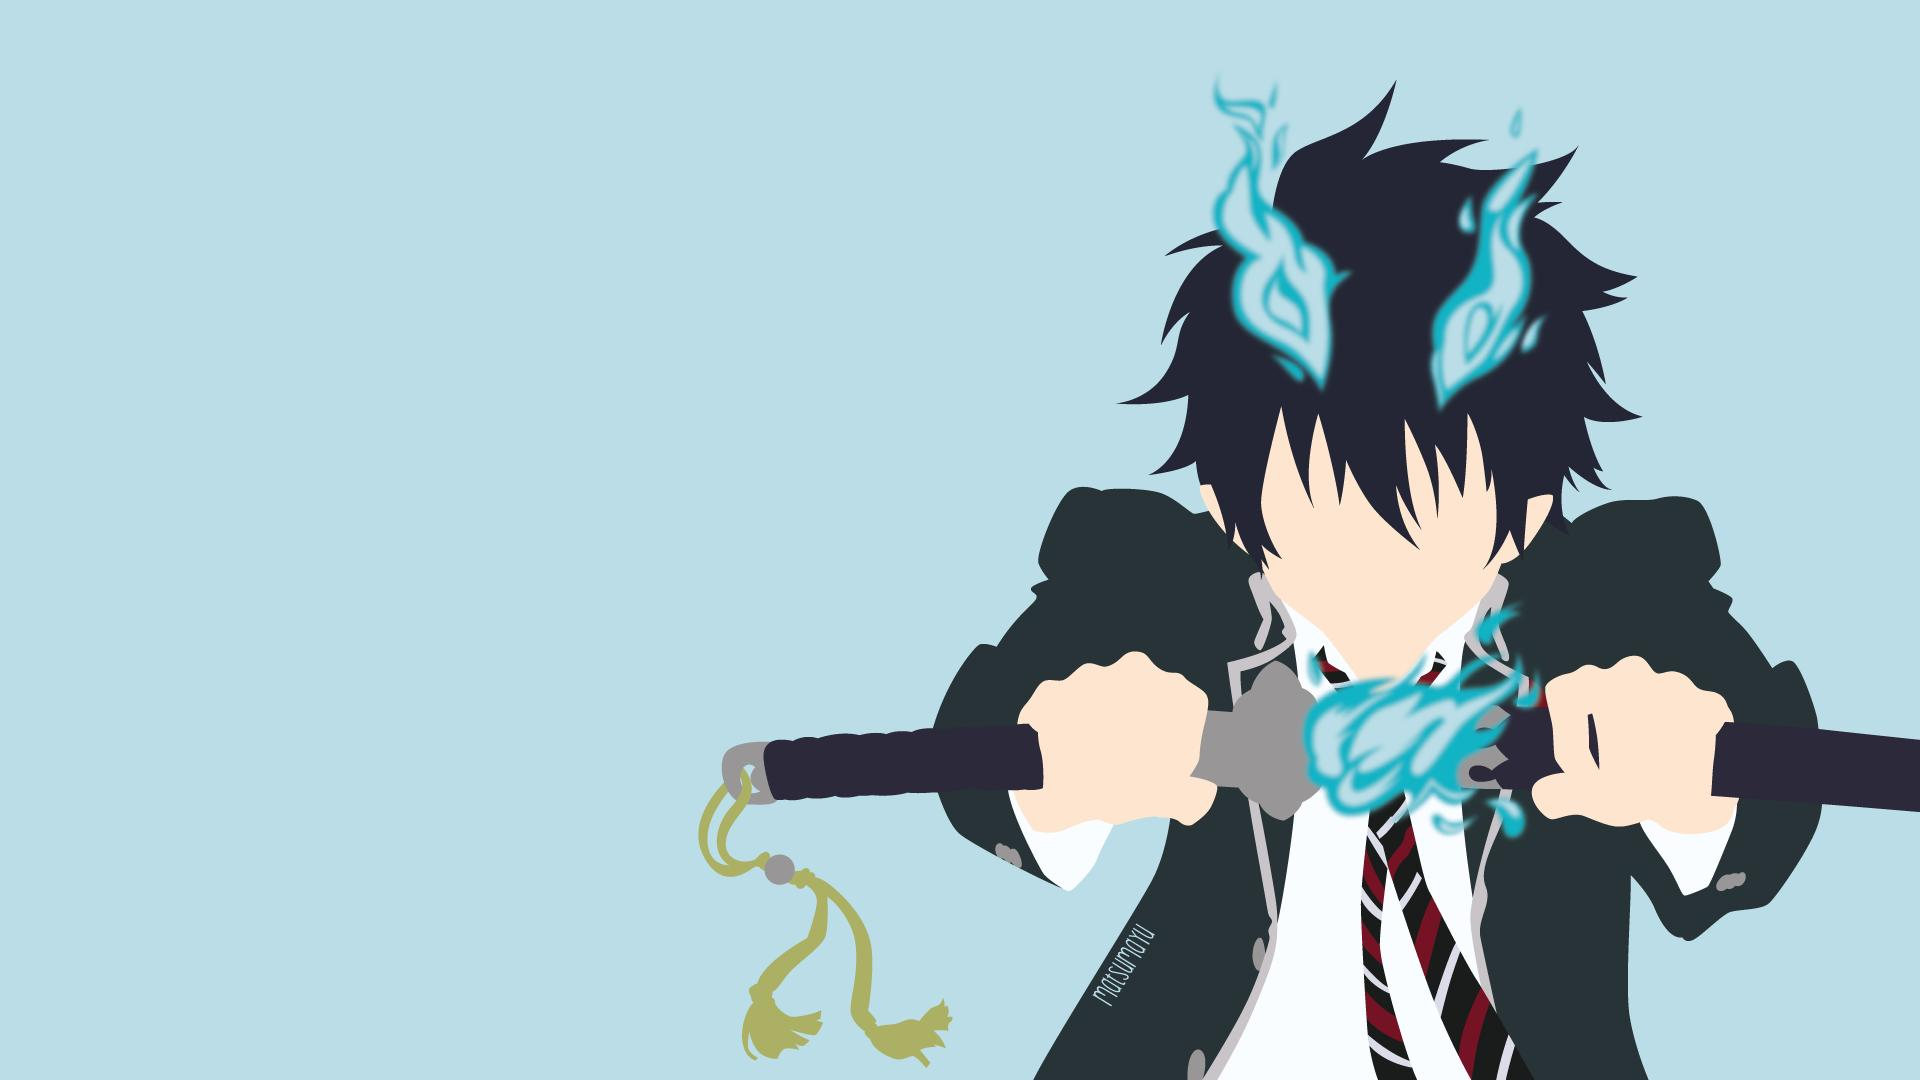 Anime wallpaper ( Vector & Minimalist ) for Android - APK ...